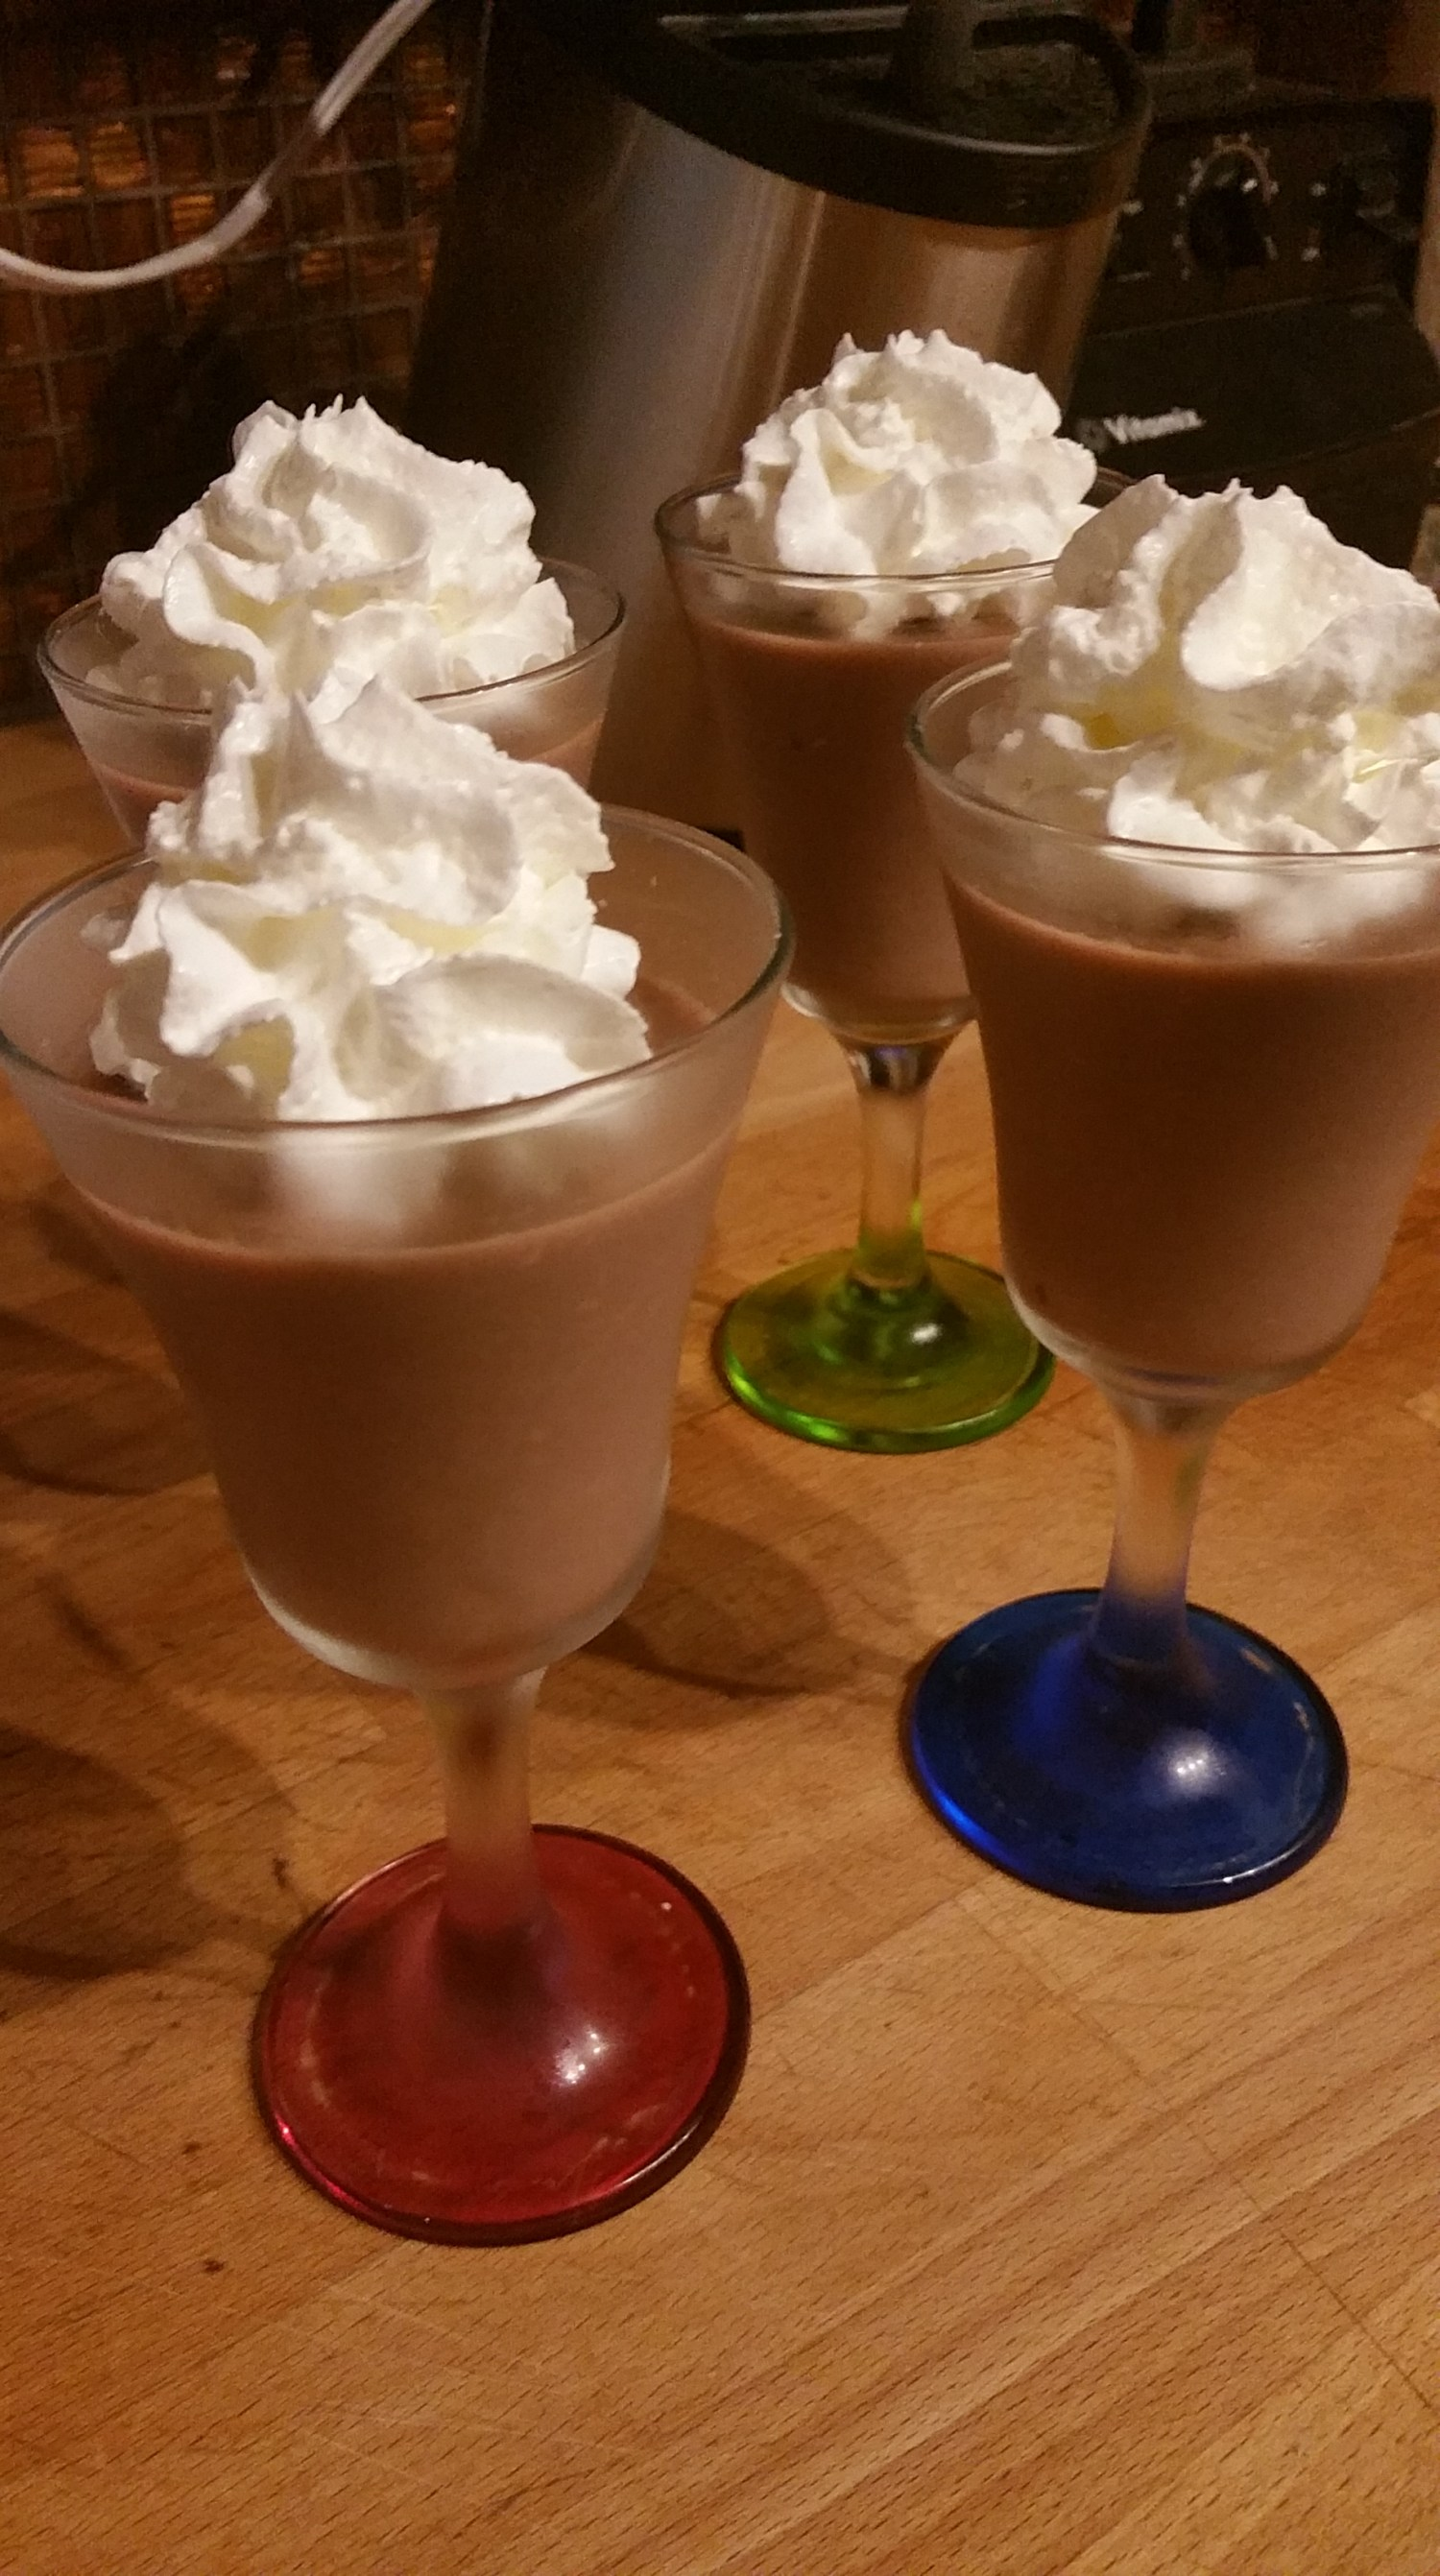 Eat your veggies – in chocolate pudding!